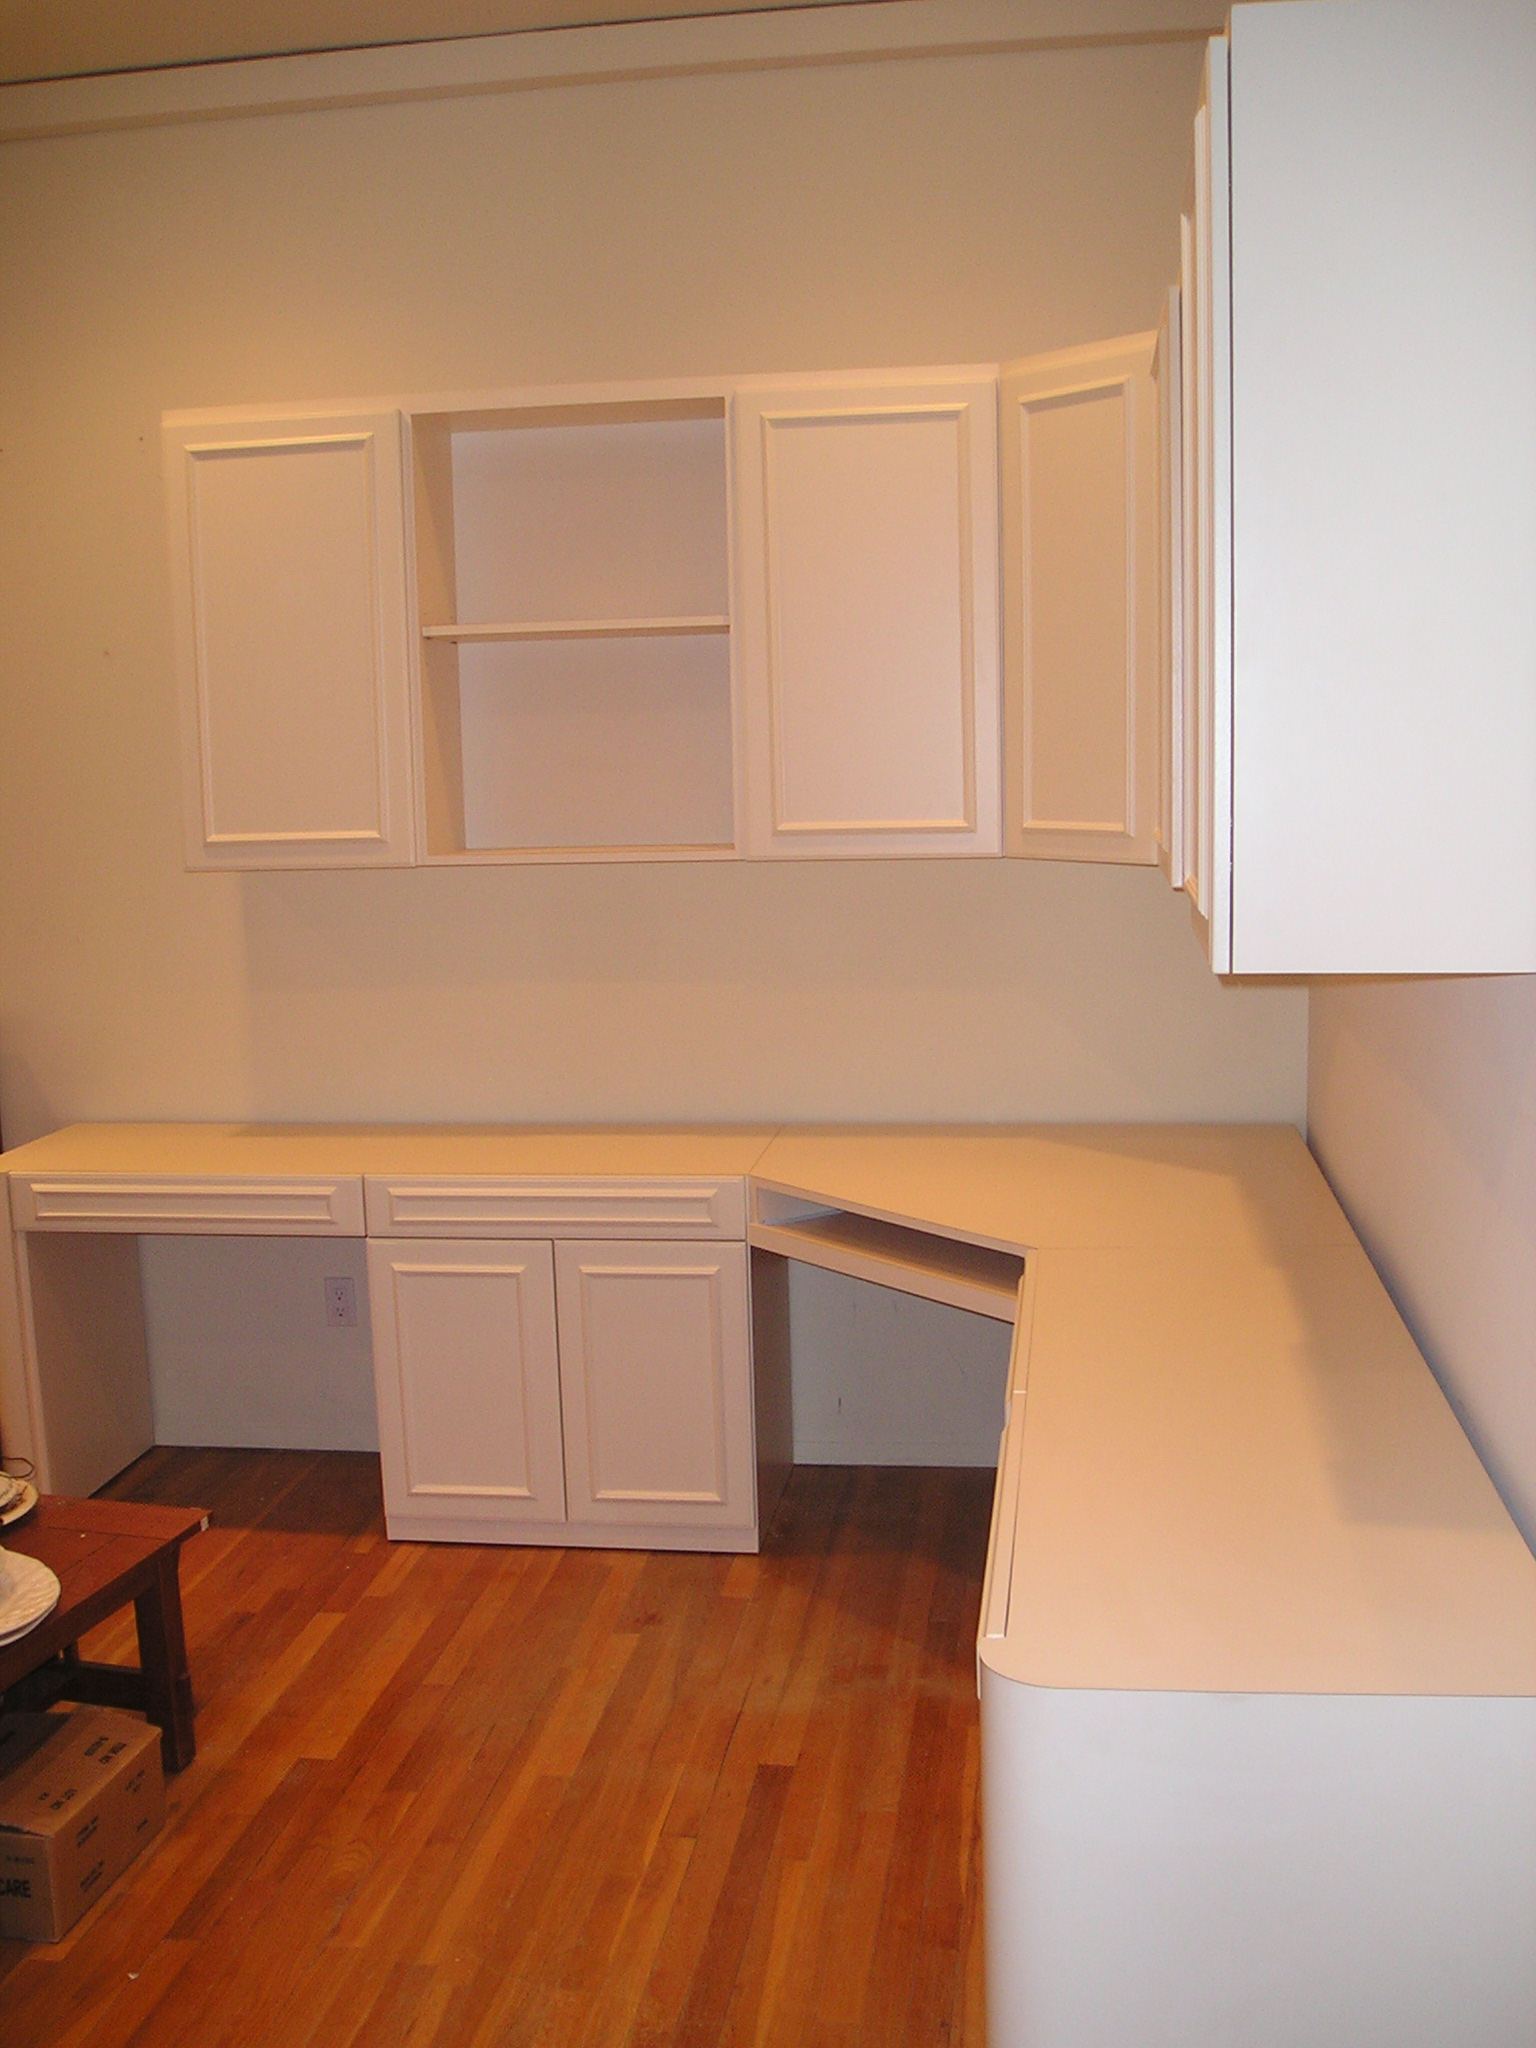 Mica Cabinetry Office Cabinetry Formica Cabinetry P Lam